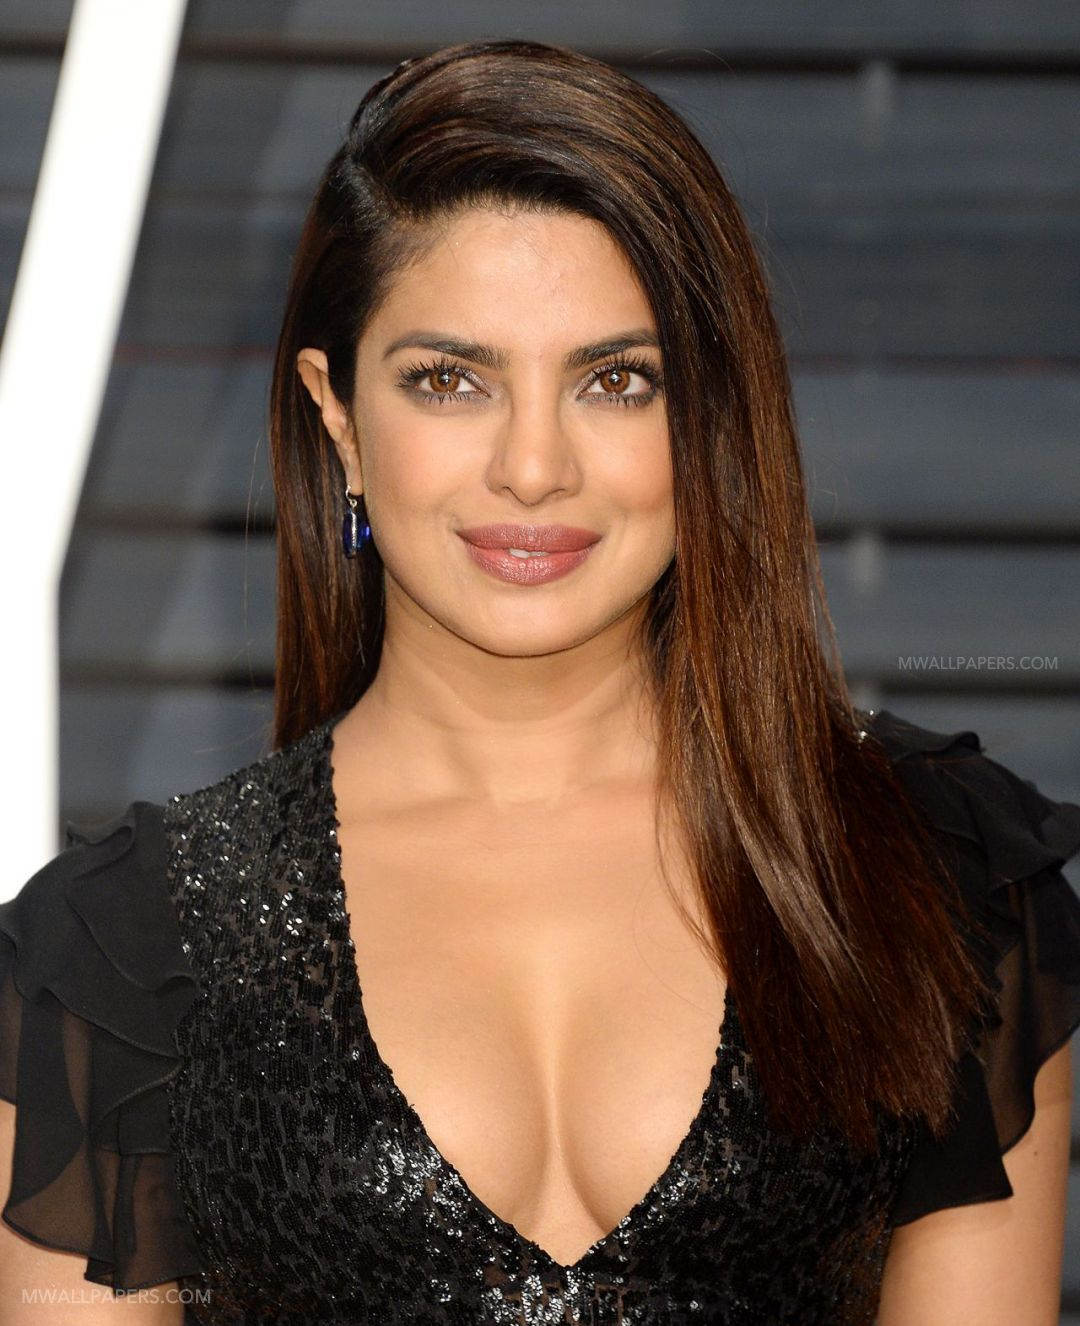 Priyanka Chopra Hot HD Photos (1080p) (15630) - Priyanka Chopra